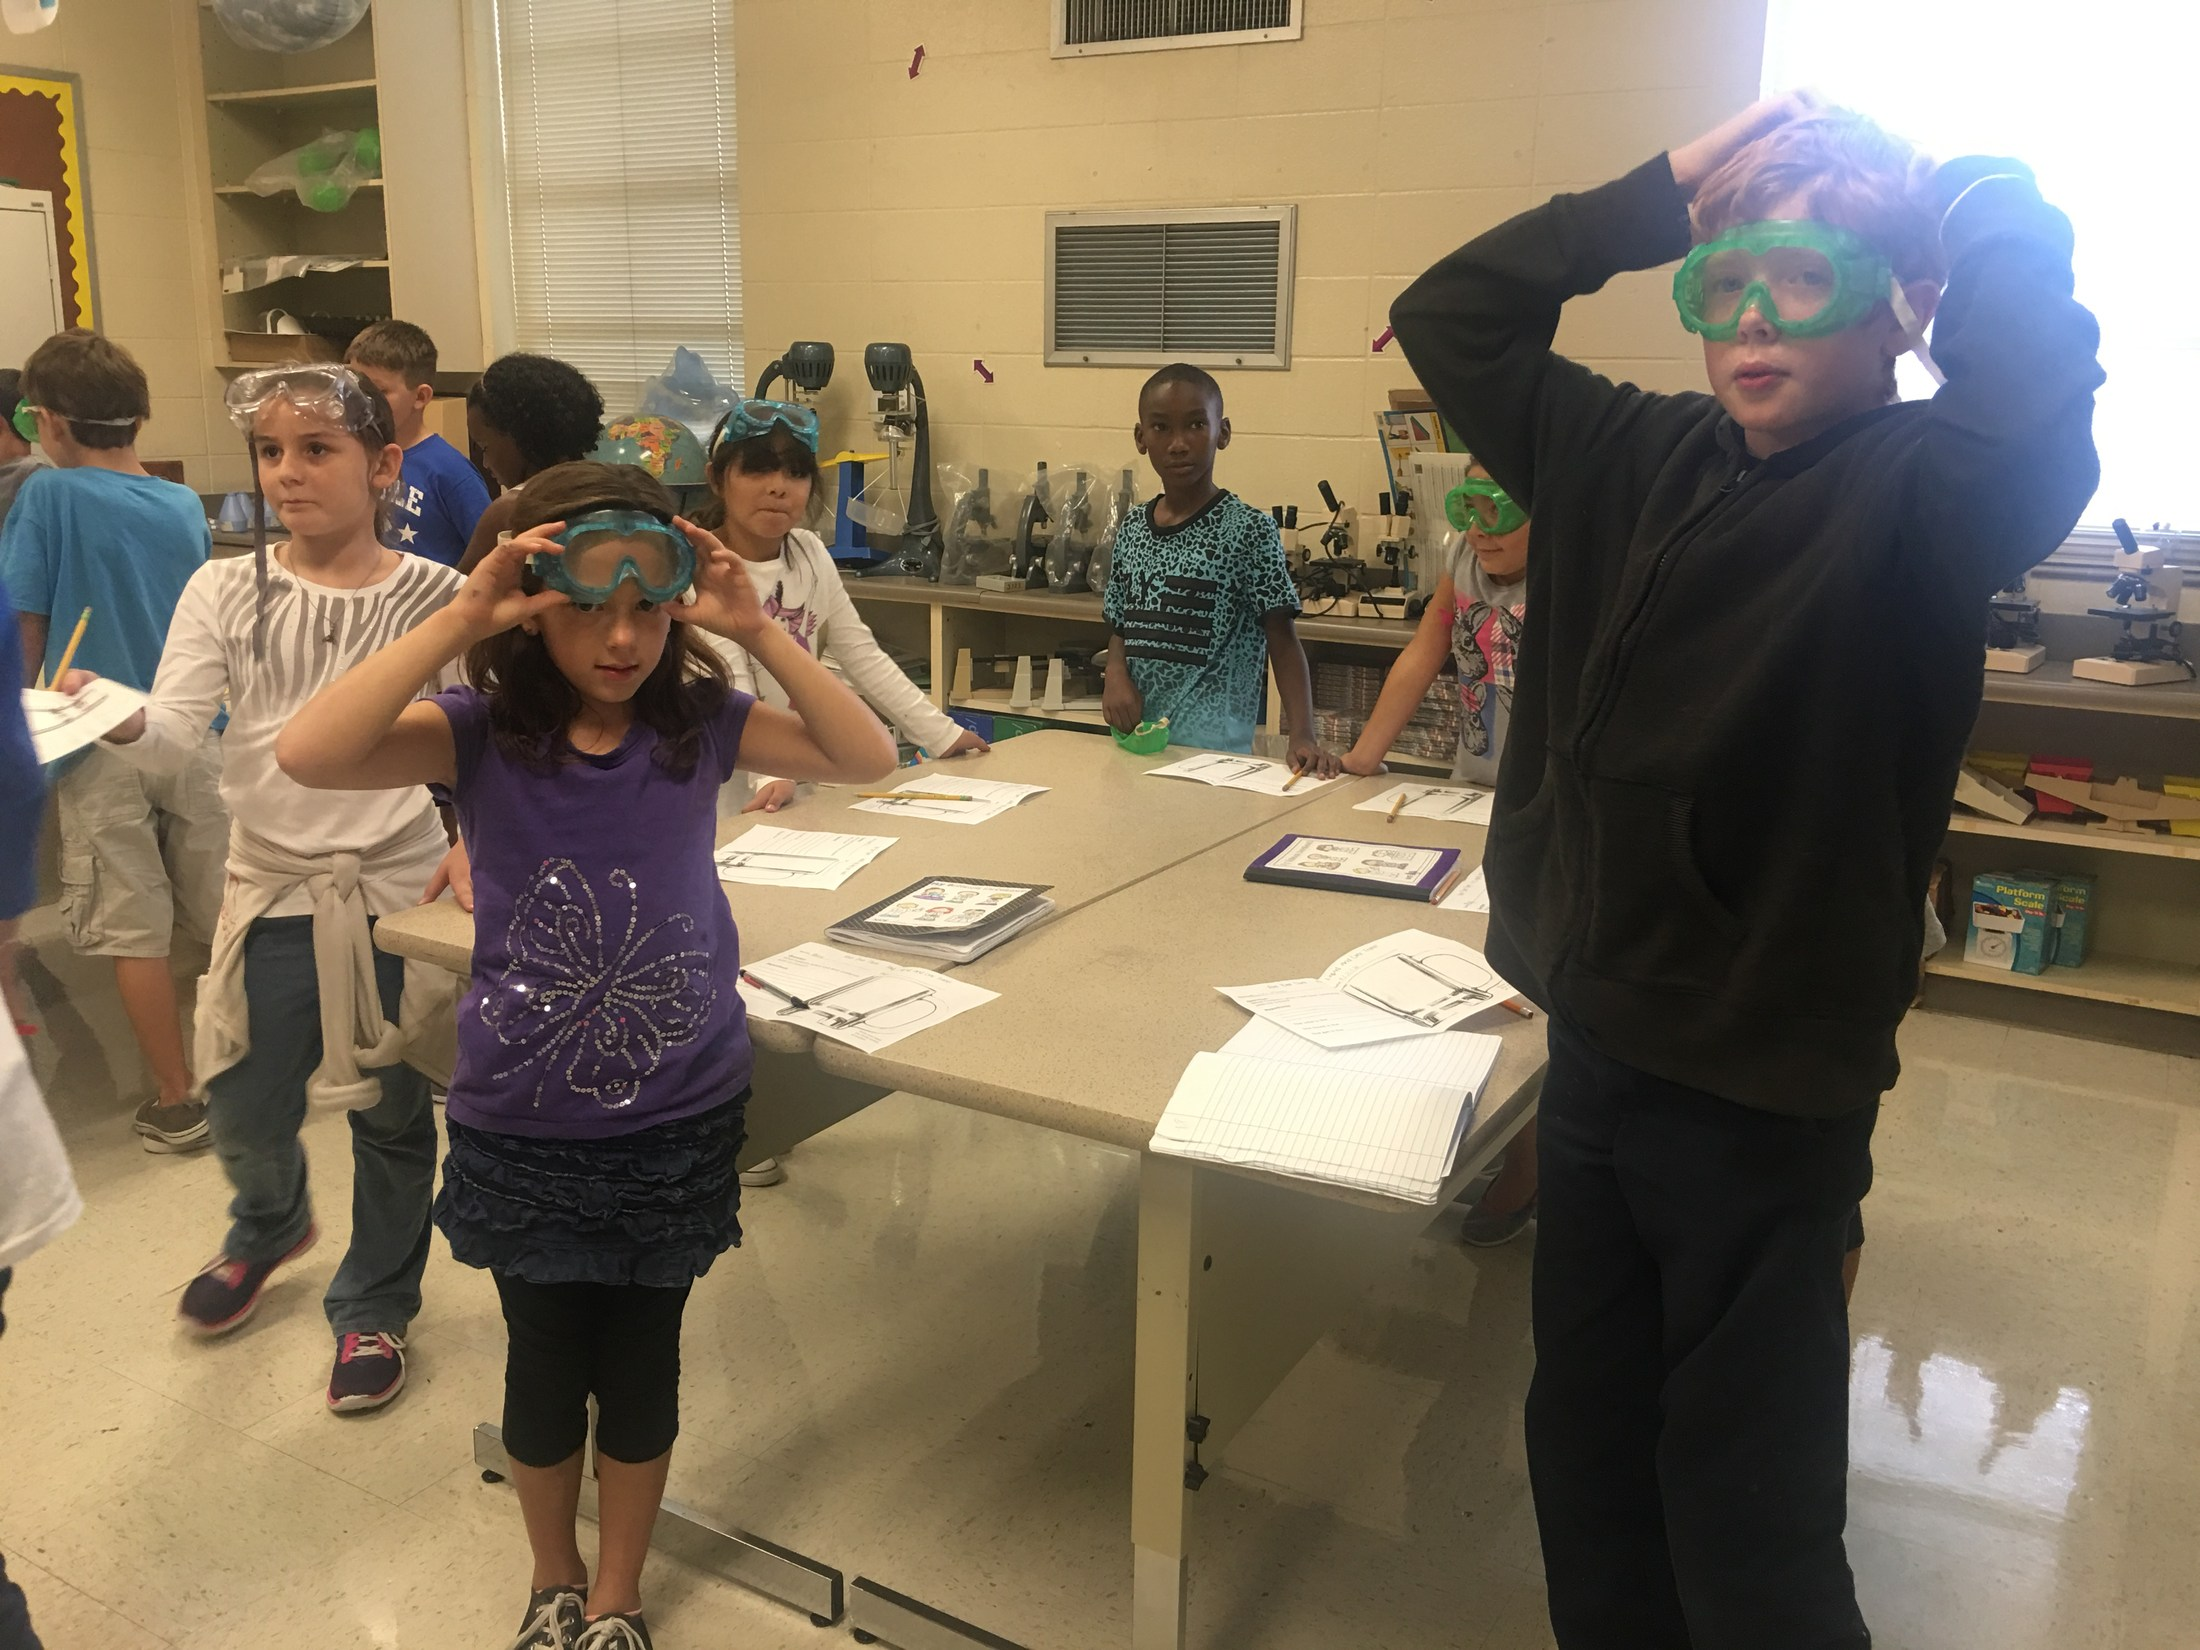 4th grade science experiment